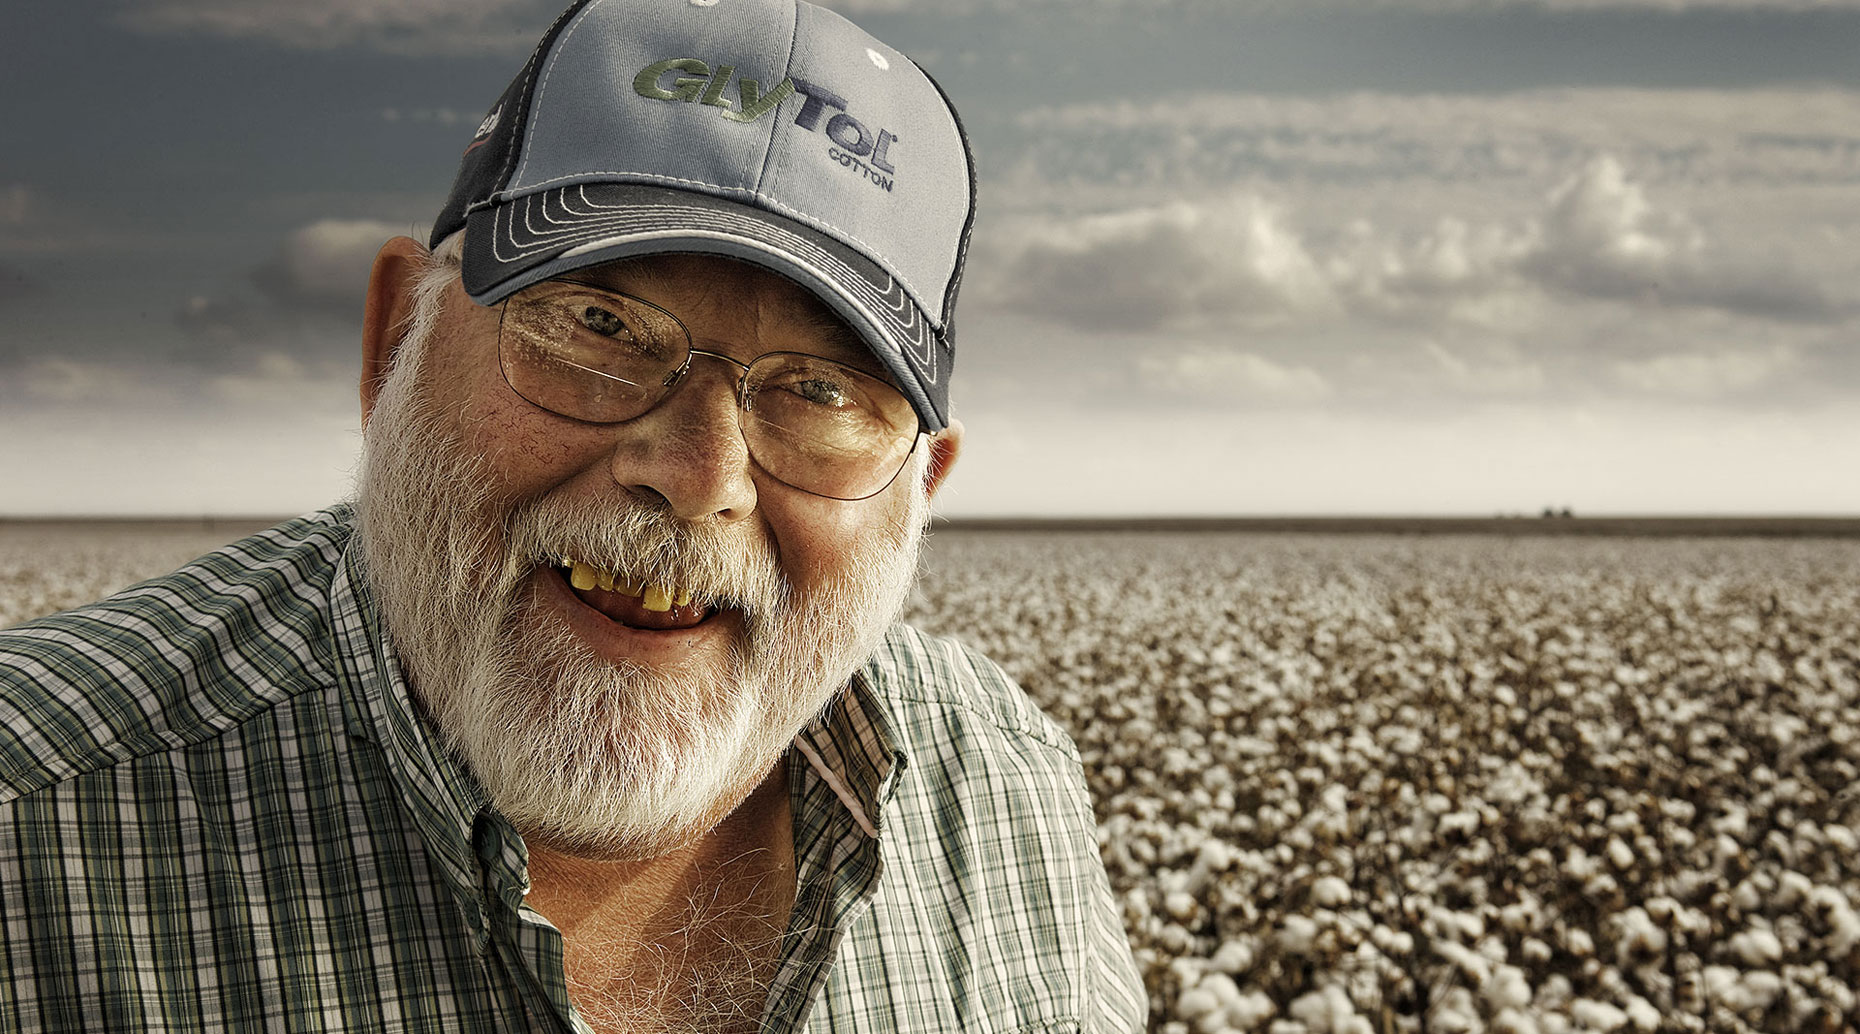 Bayer Crop Science_028| Robert Randall Advertising Photographer, Commercial Photographer, CGI, Portrait, and Lifestyle Photography